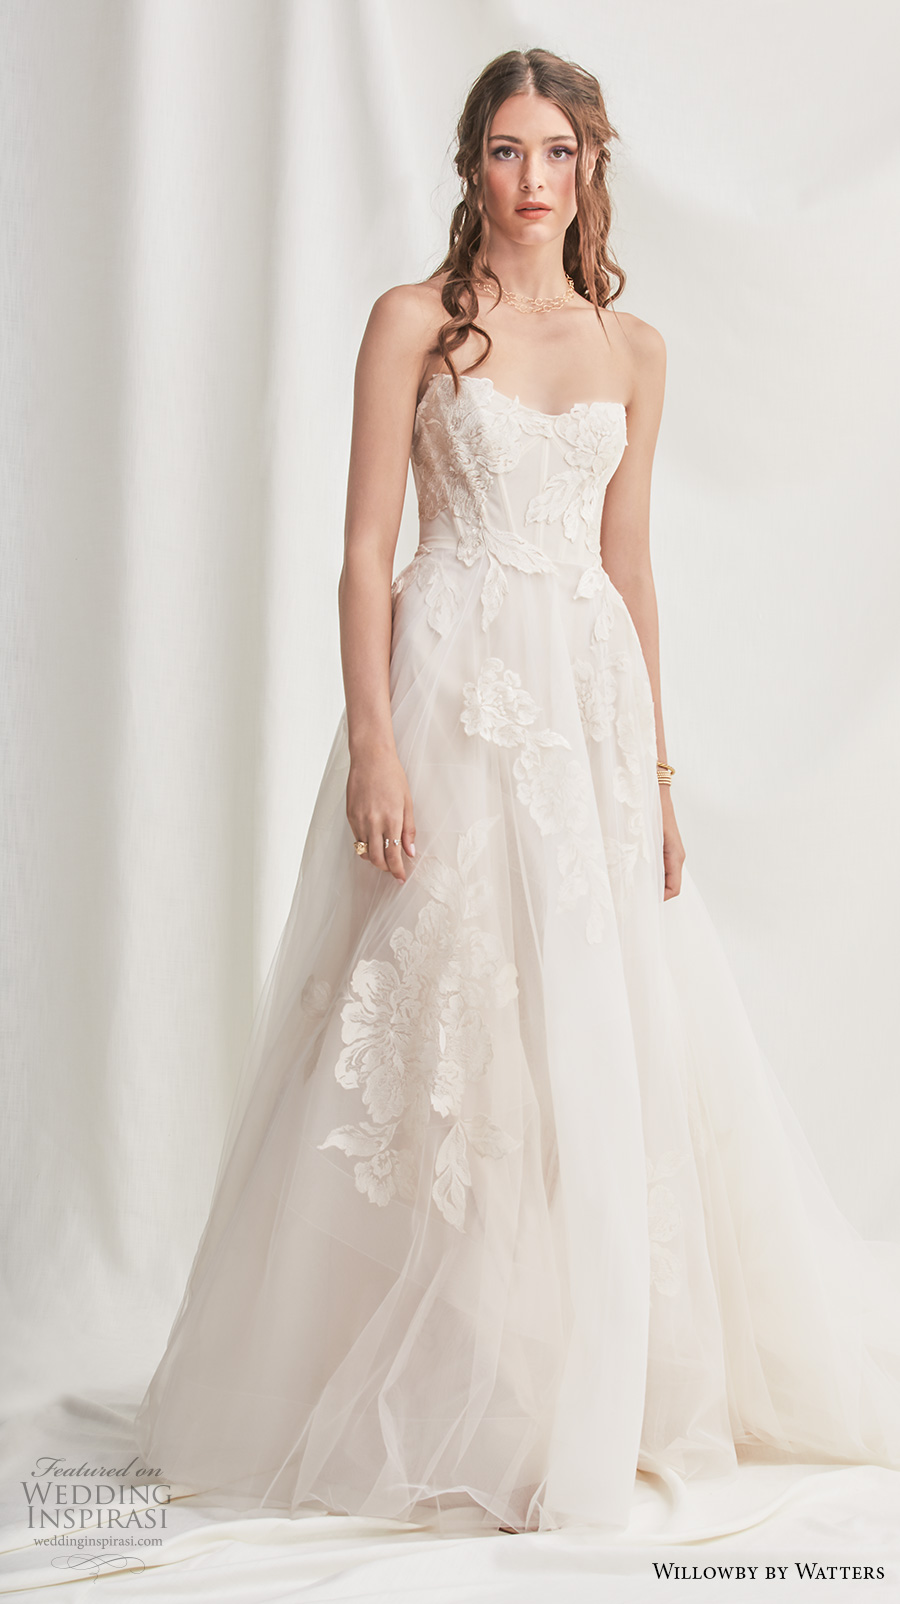 willowby by watters spring 2019 bridal strapless sweetheart neckline heavily embellished bodice corset romantic a  line wedding dress (1) mv